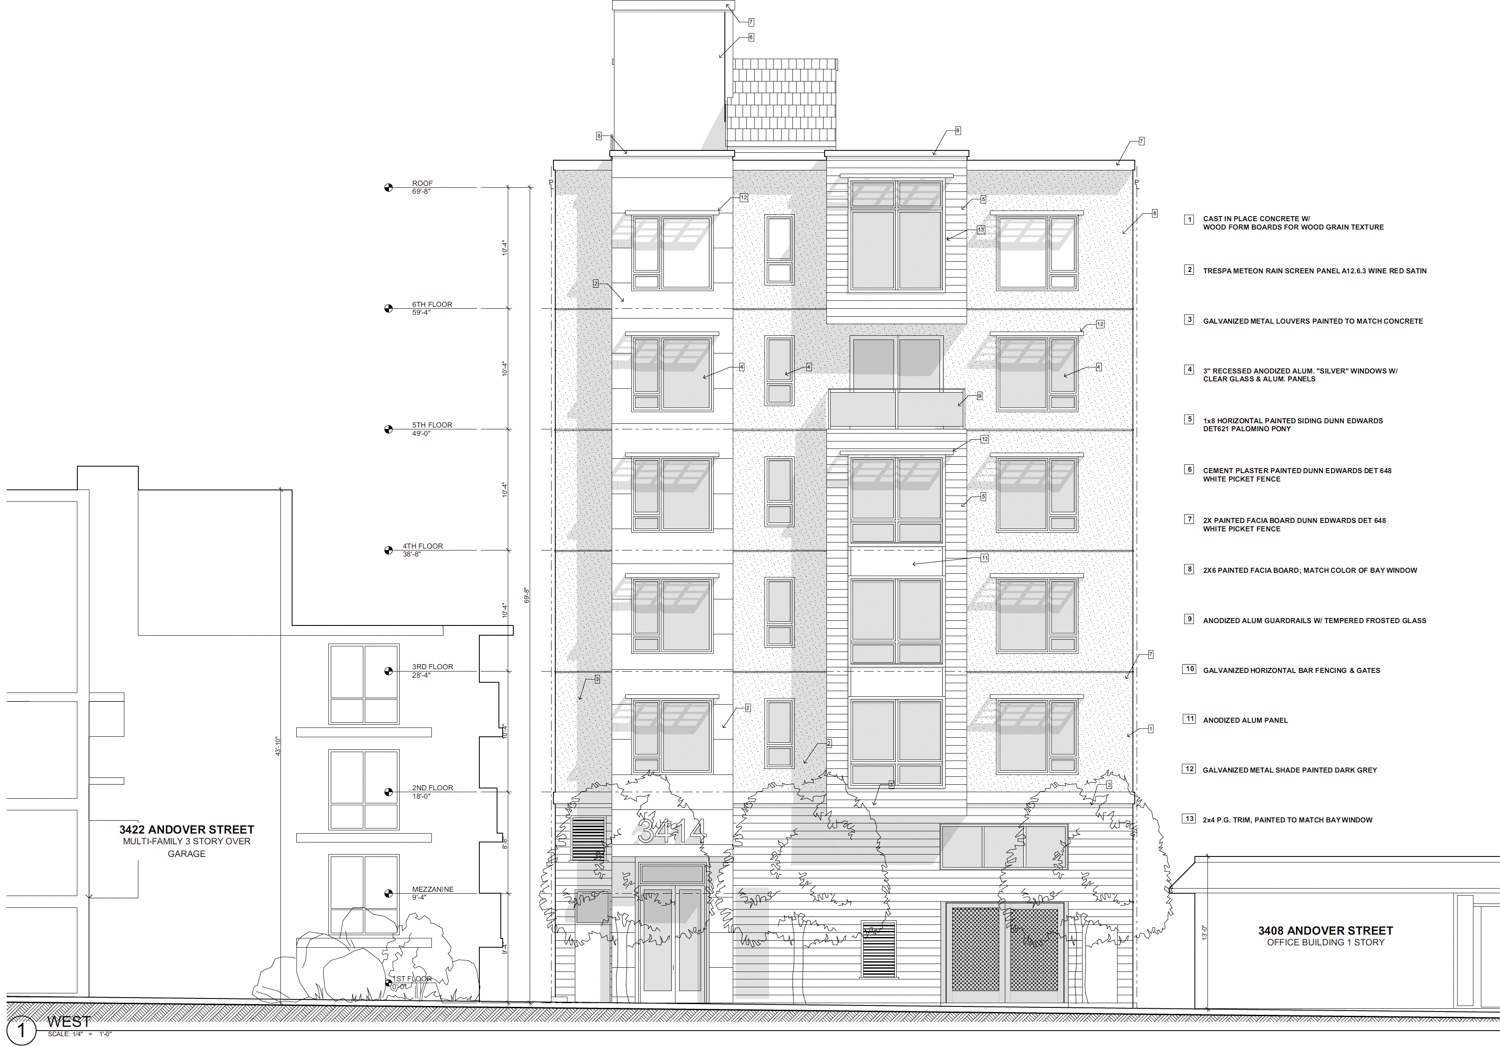 3414 Andover Street vertical elevation, design by Kotas Pantaleoni Architects